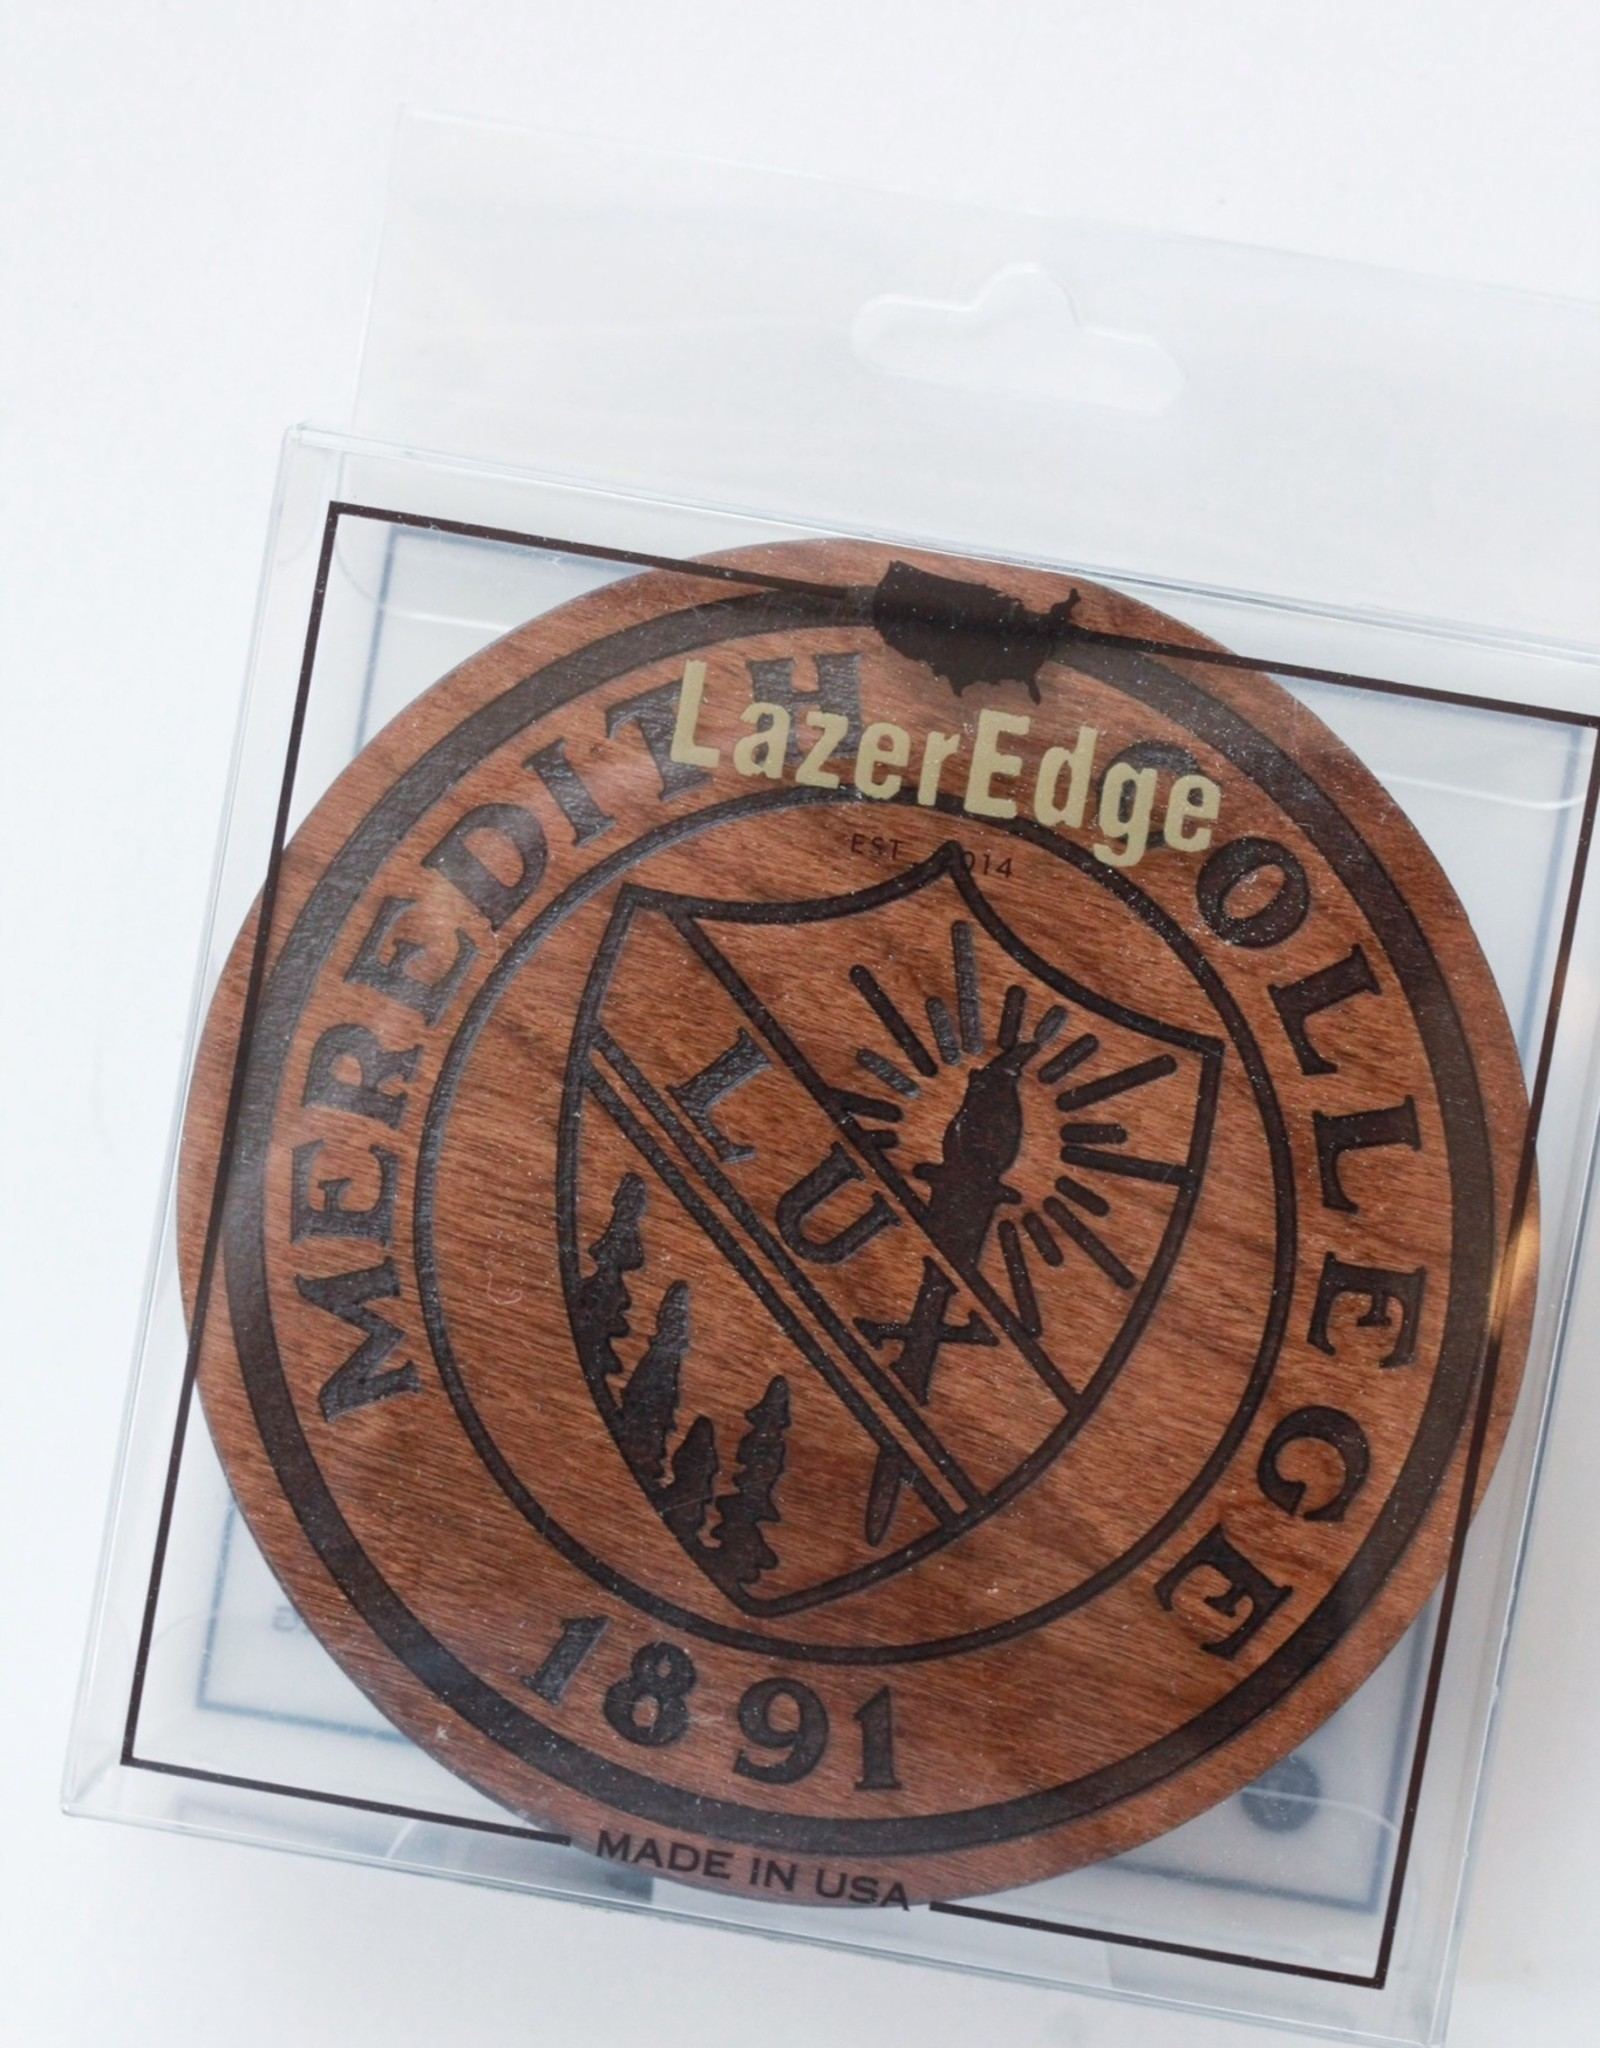 LazerEdge Meredith College Seal Coasters